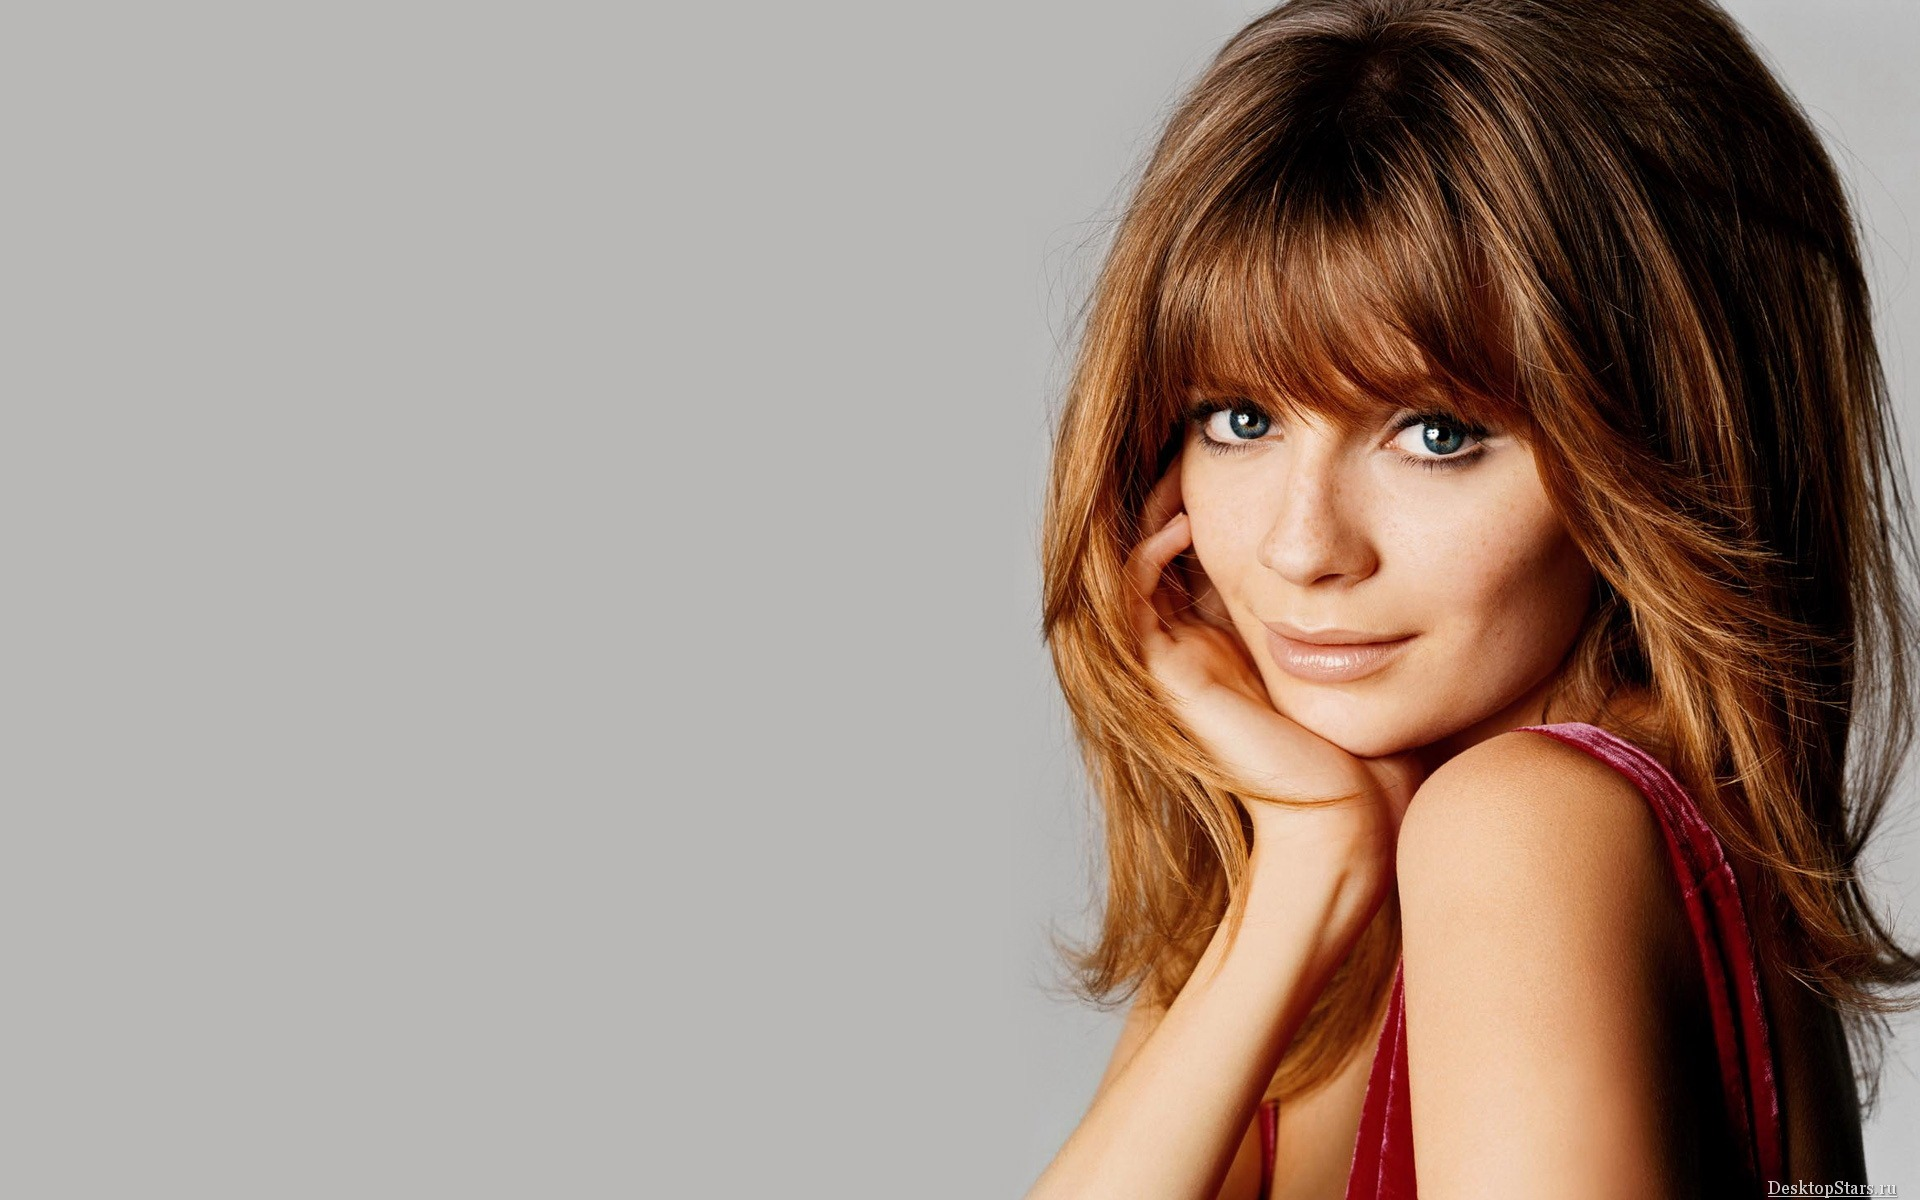 Mischa Barton #067 - 1920x1200 Wallpapers Pictures Photos Images